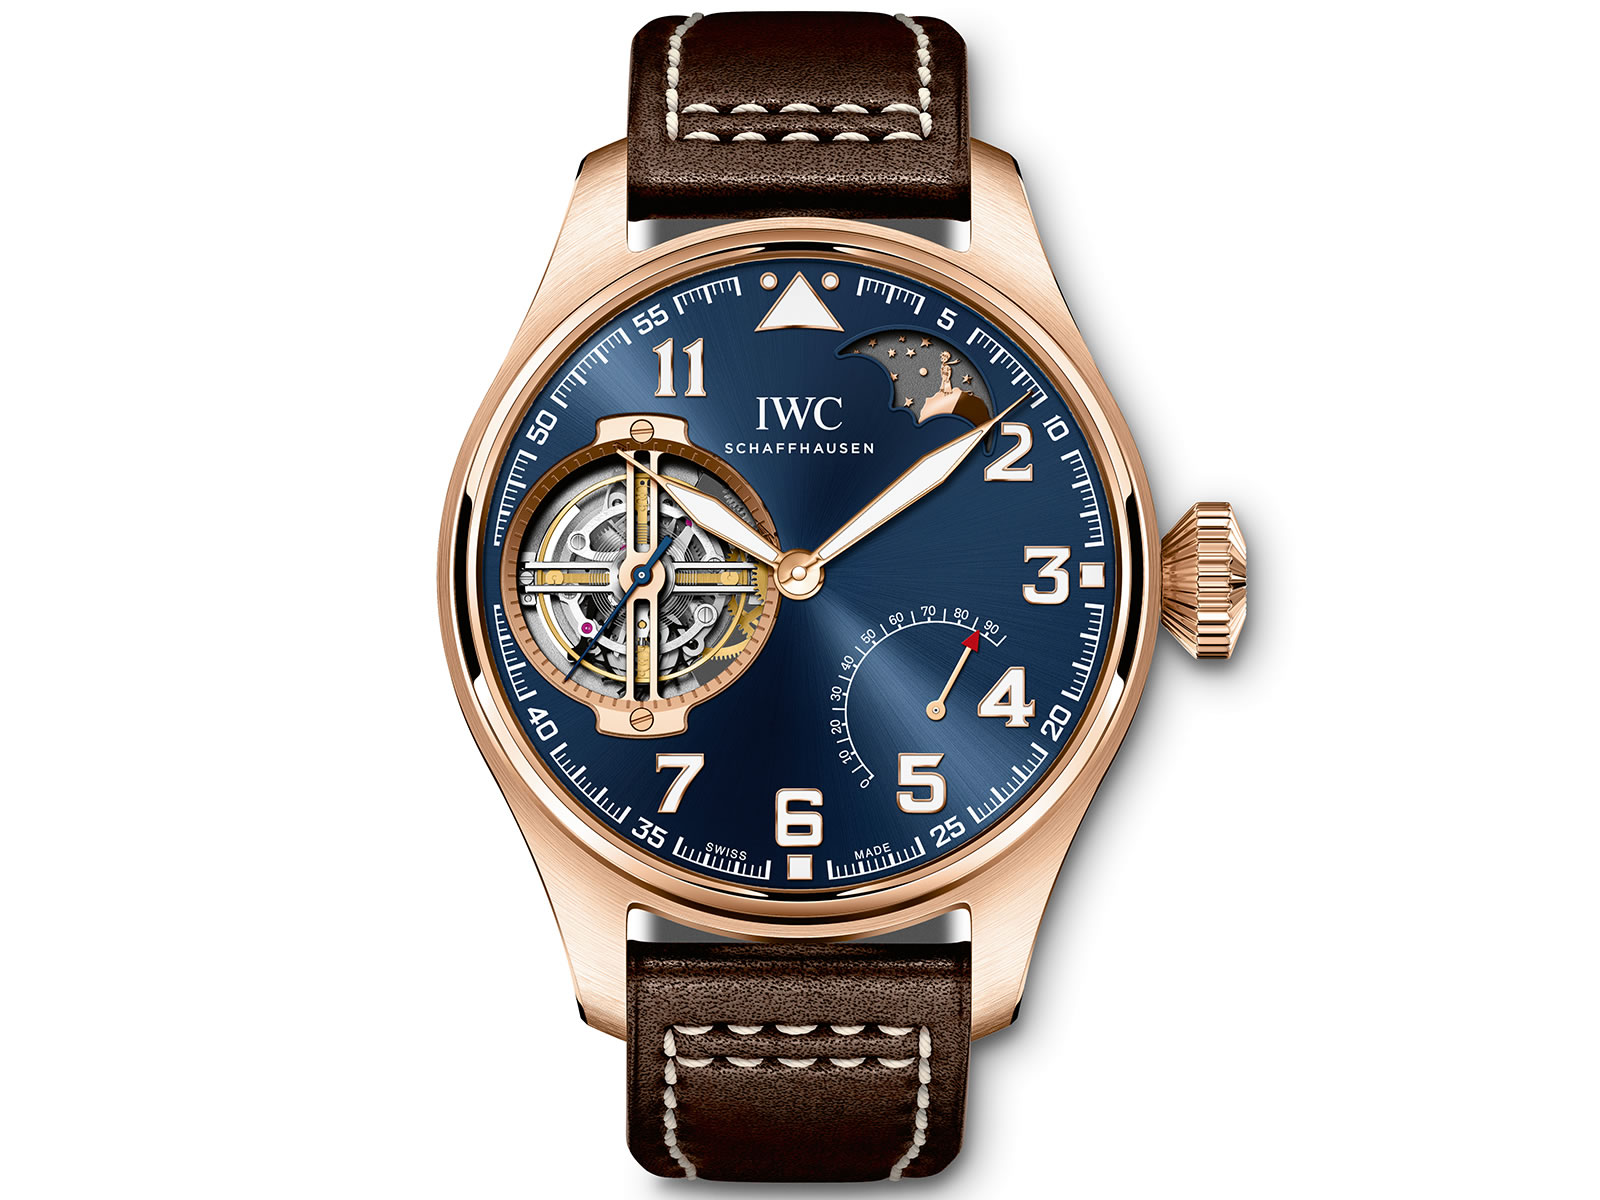 iwc-innovative-materials-of-luxury-watchmaking-18k-armor-gold-2.jpg